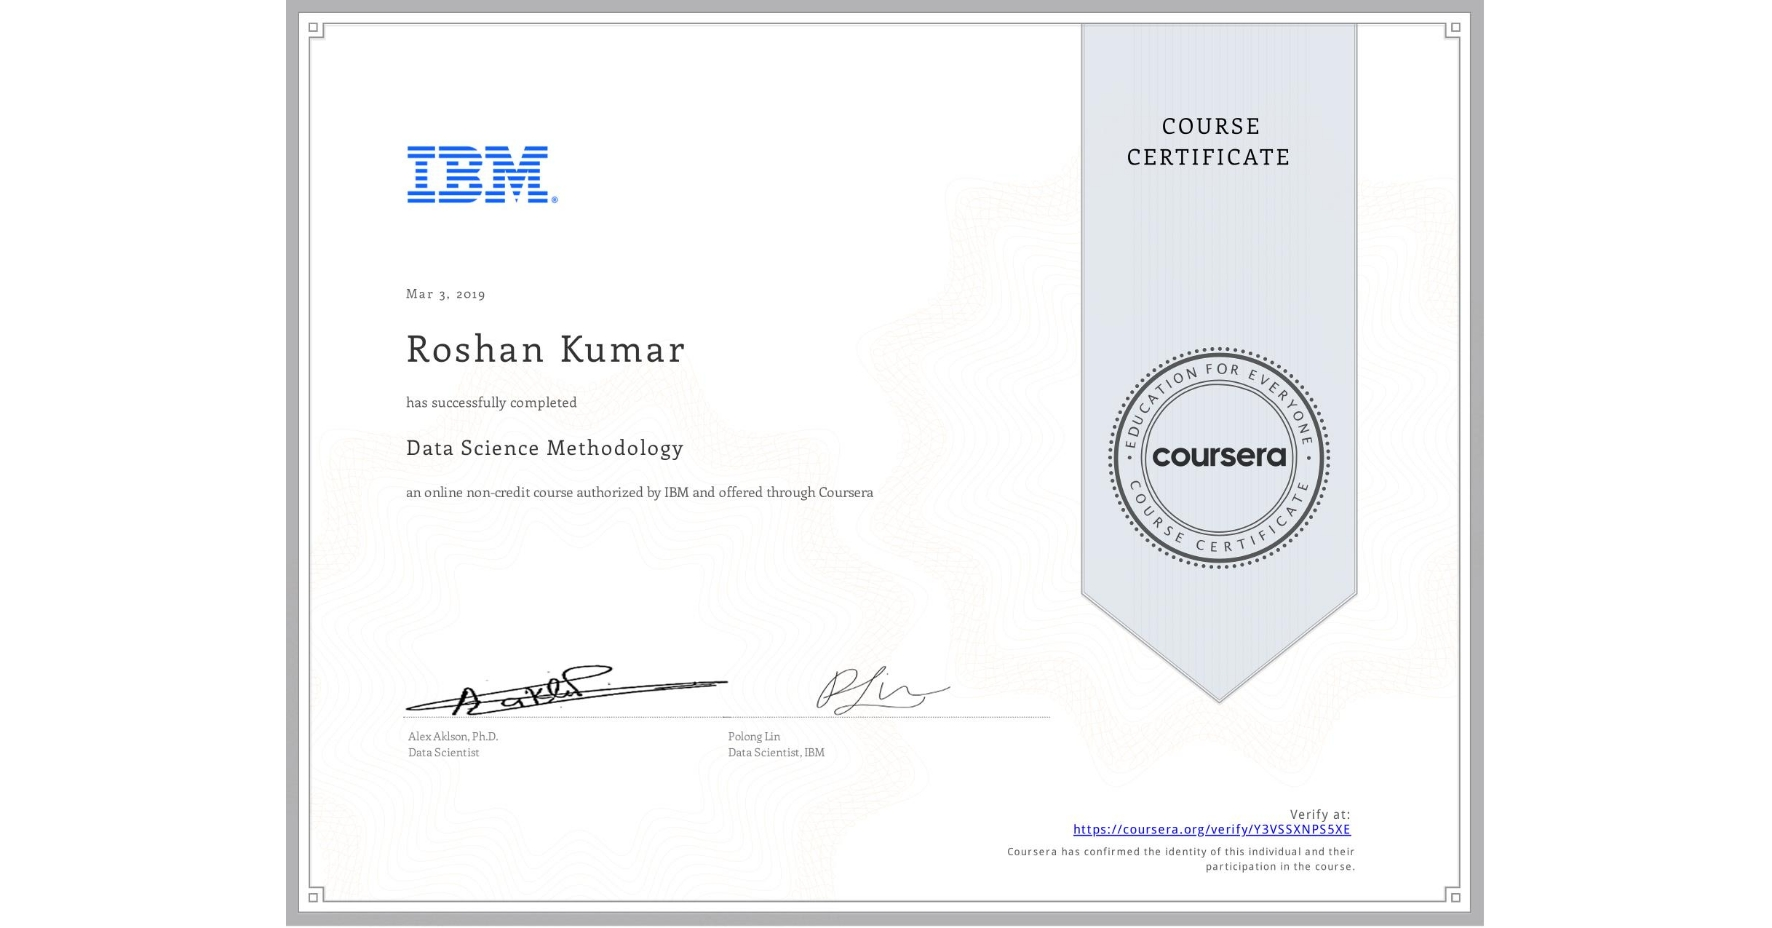 View certificate for Roshan Kumar, Data Science Methodology, an online non-credit course authorized by IBM and offered through Coursera